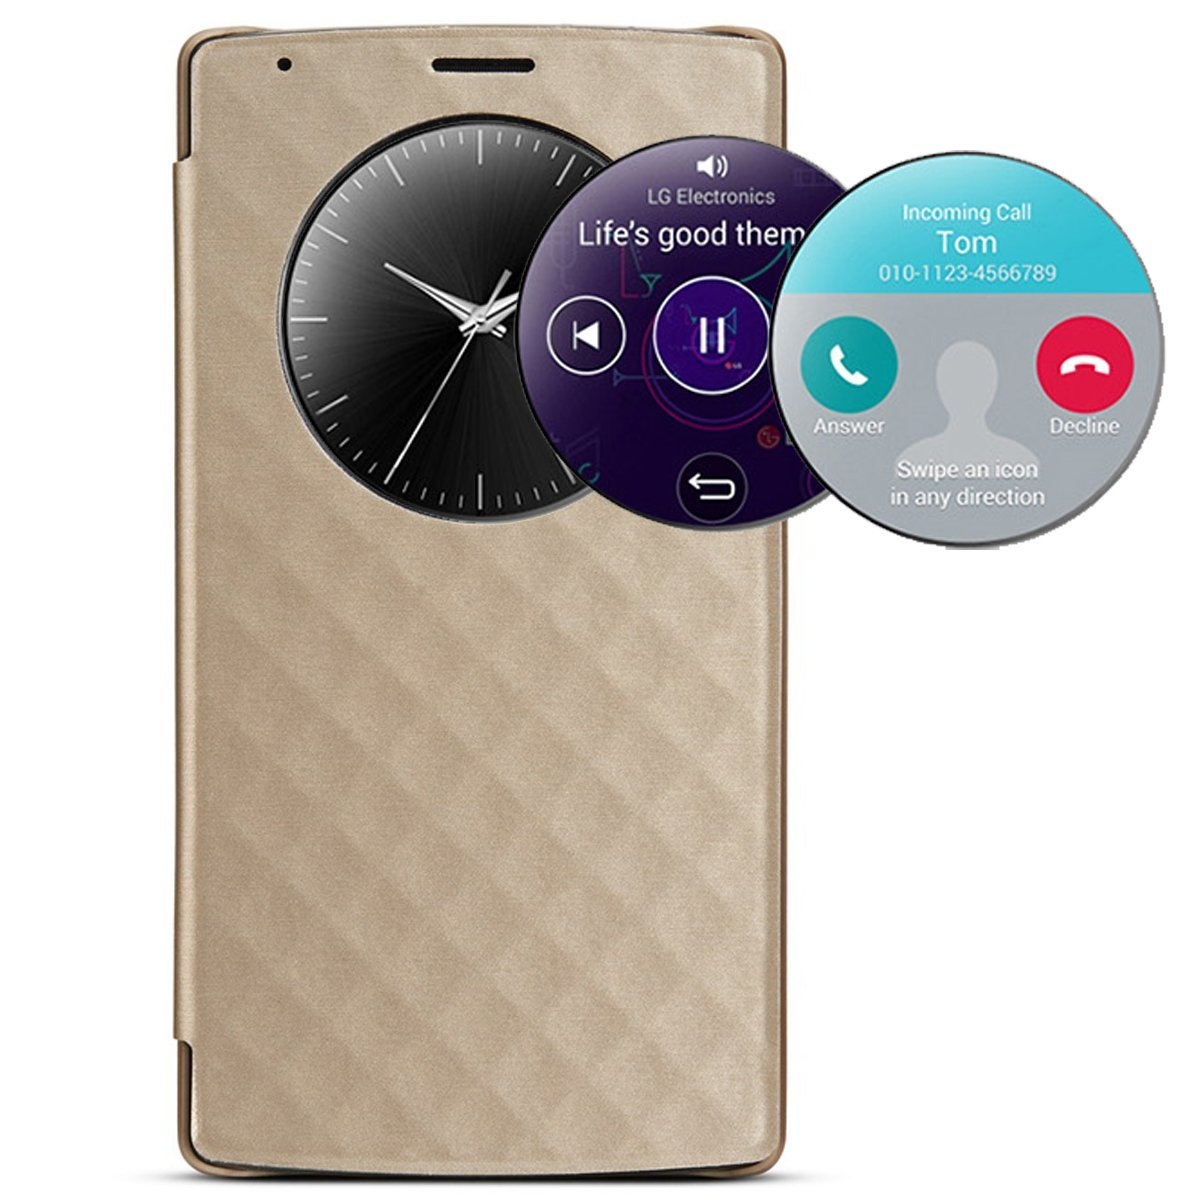 LG G4 Wireless Charging Receiver Case #G4WCR